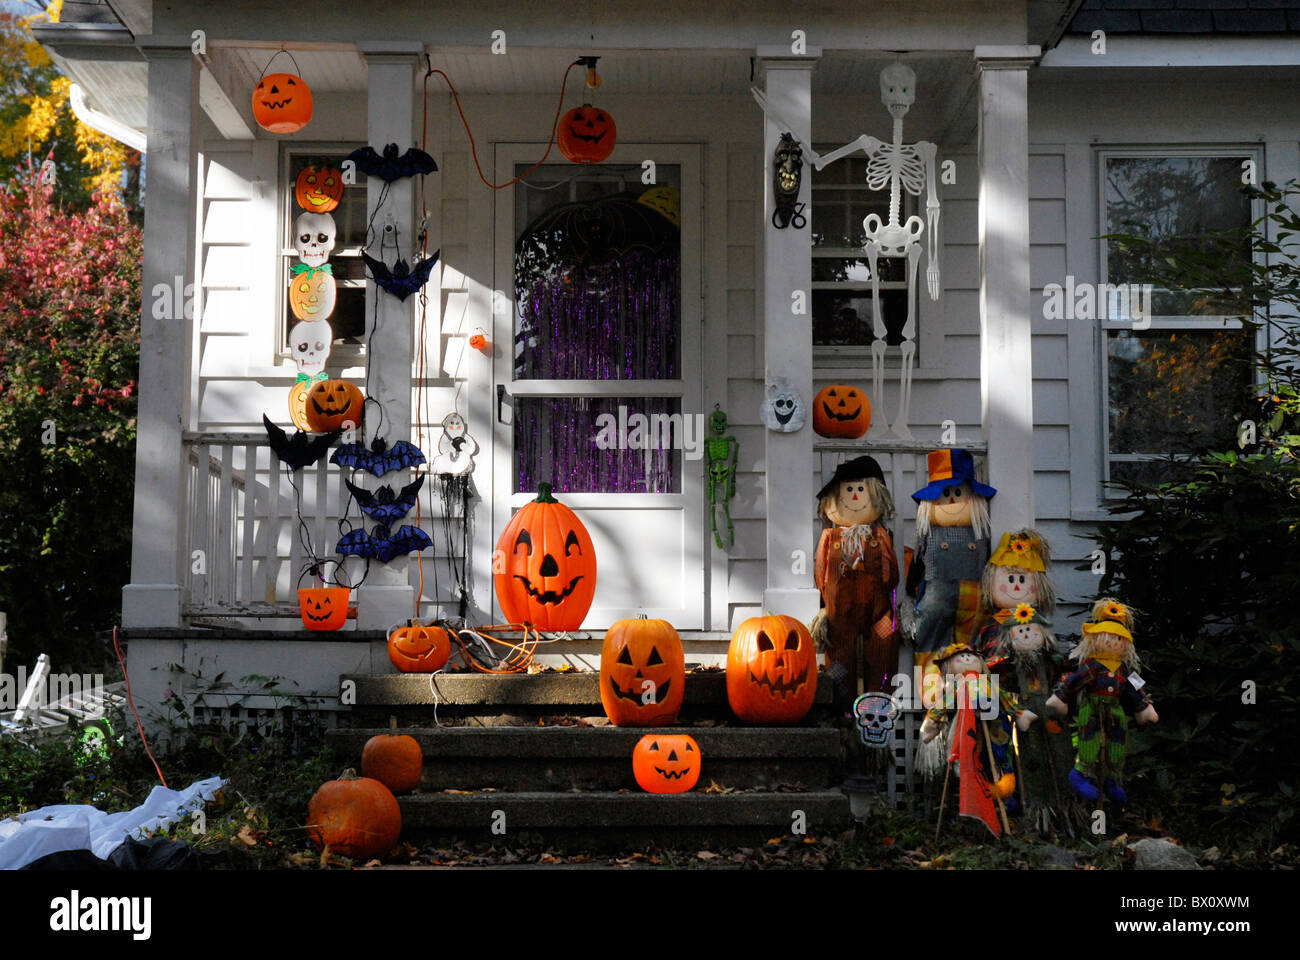 House fron doorstep decorated for Halloween & House fron doorstep decorated for Halloween Stock Photo Royalty ... pezcame.com